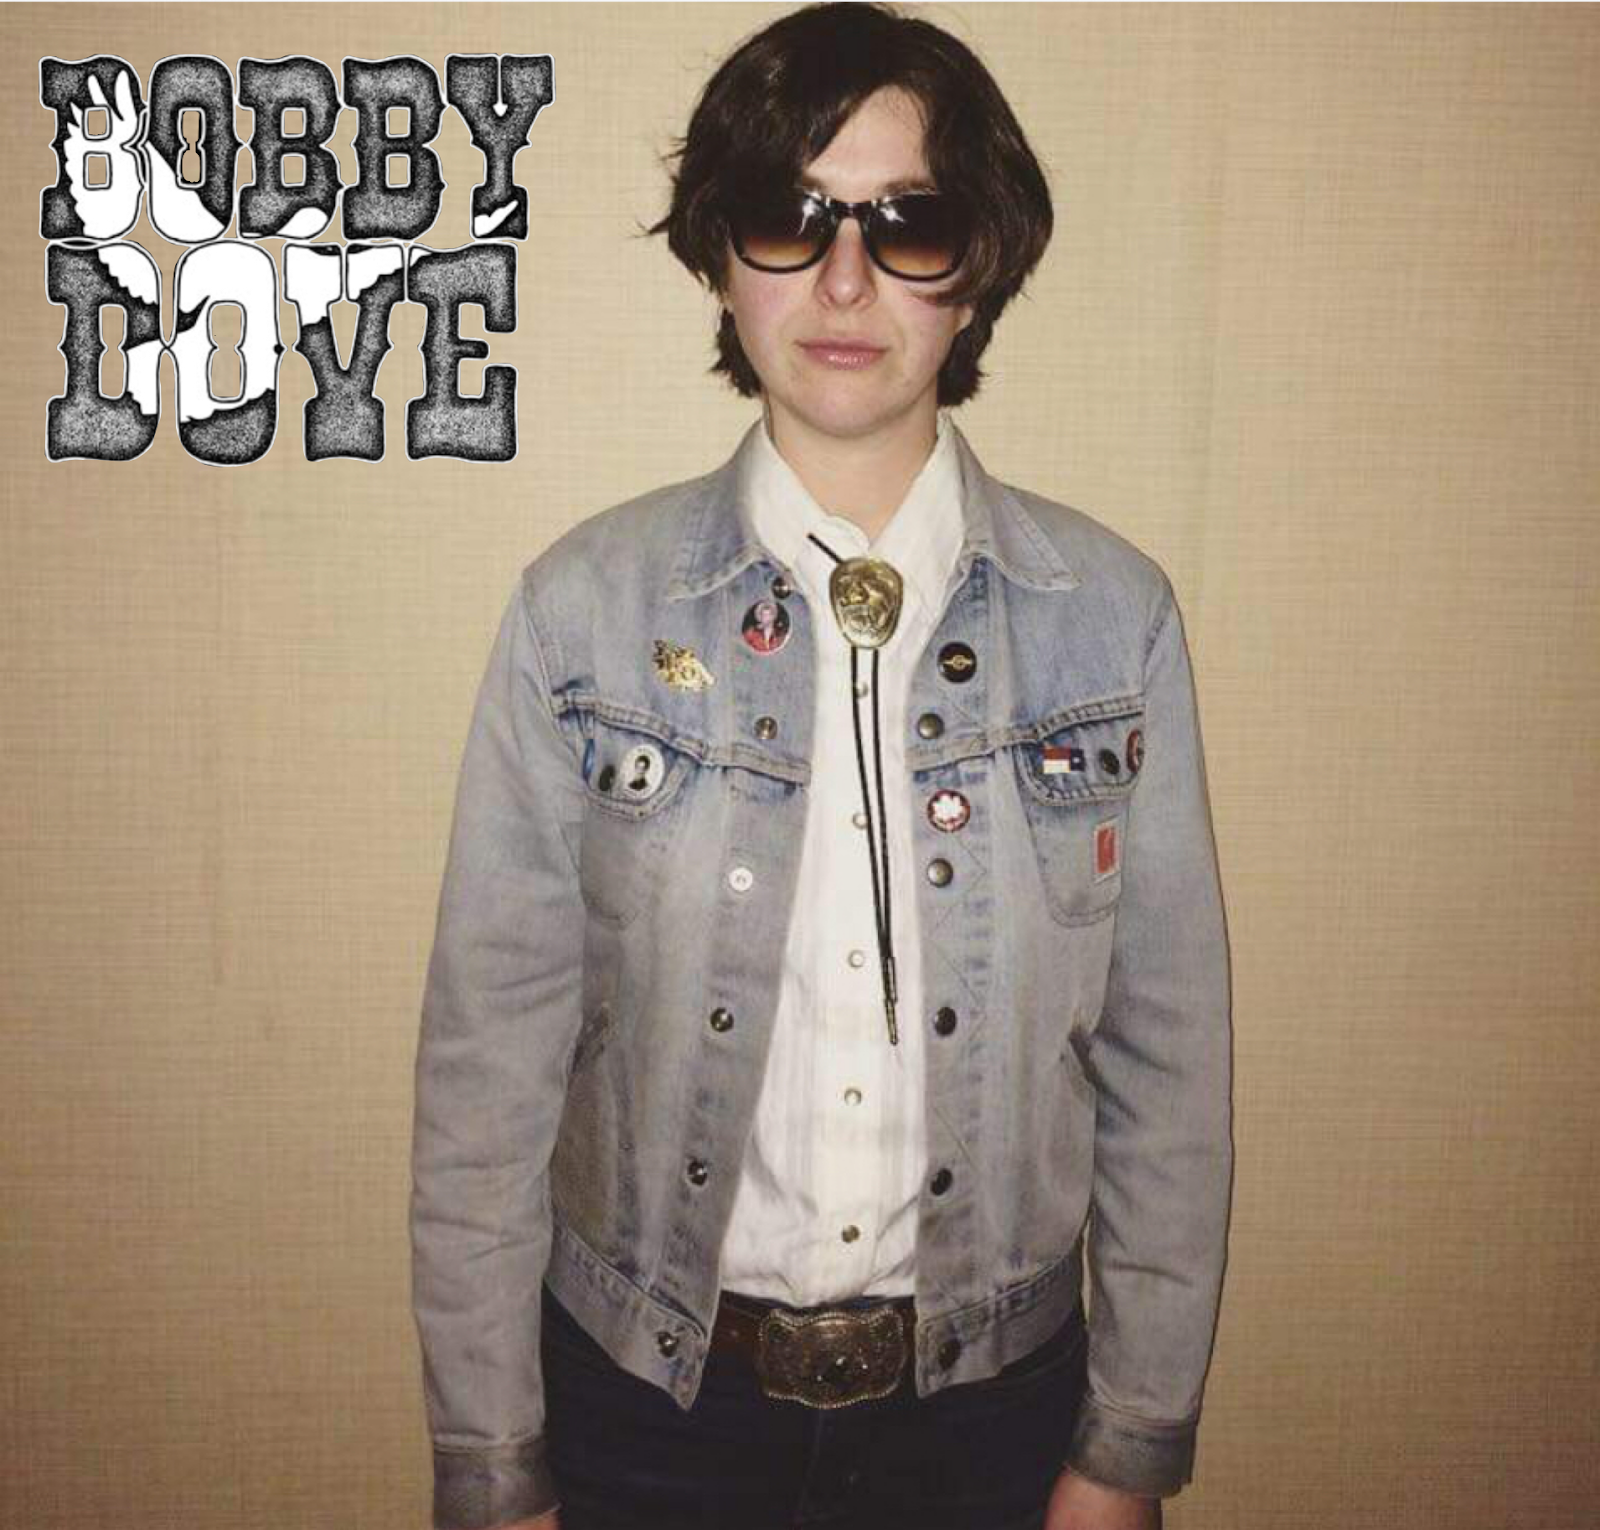 Bobby Dove.png